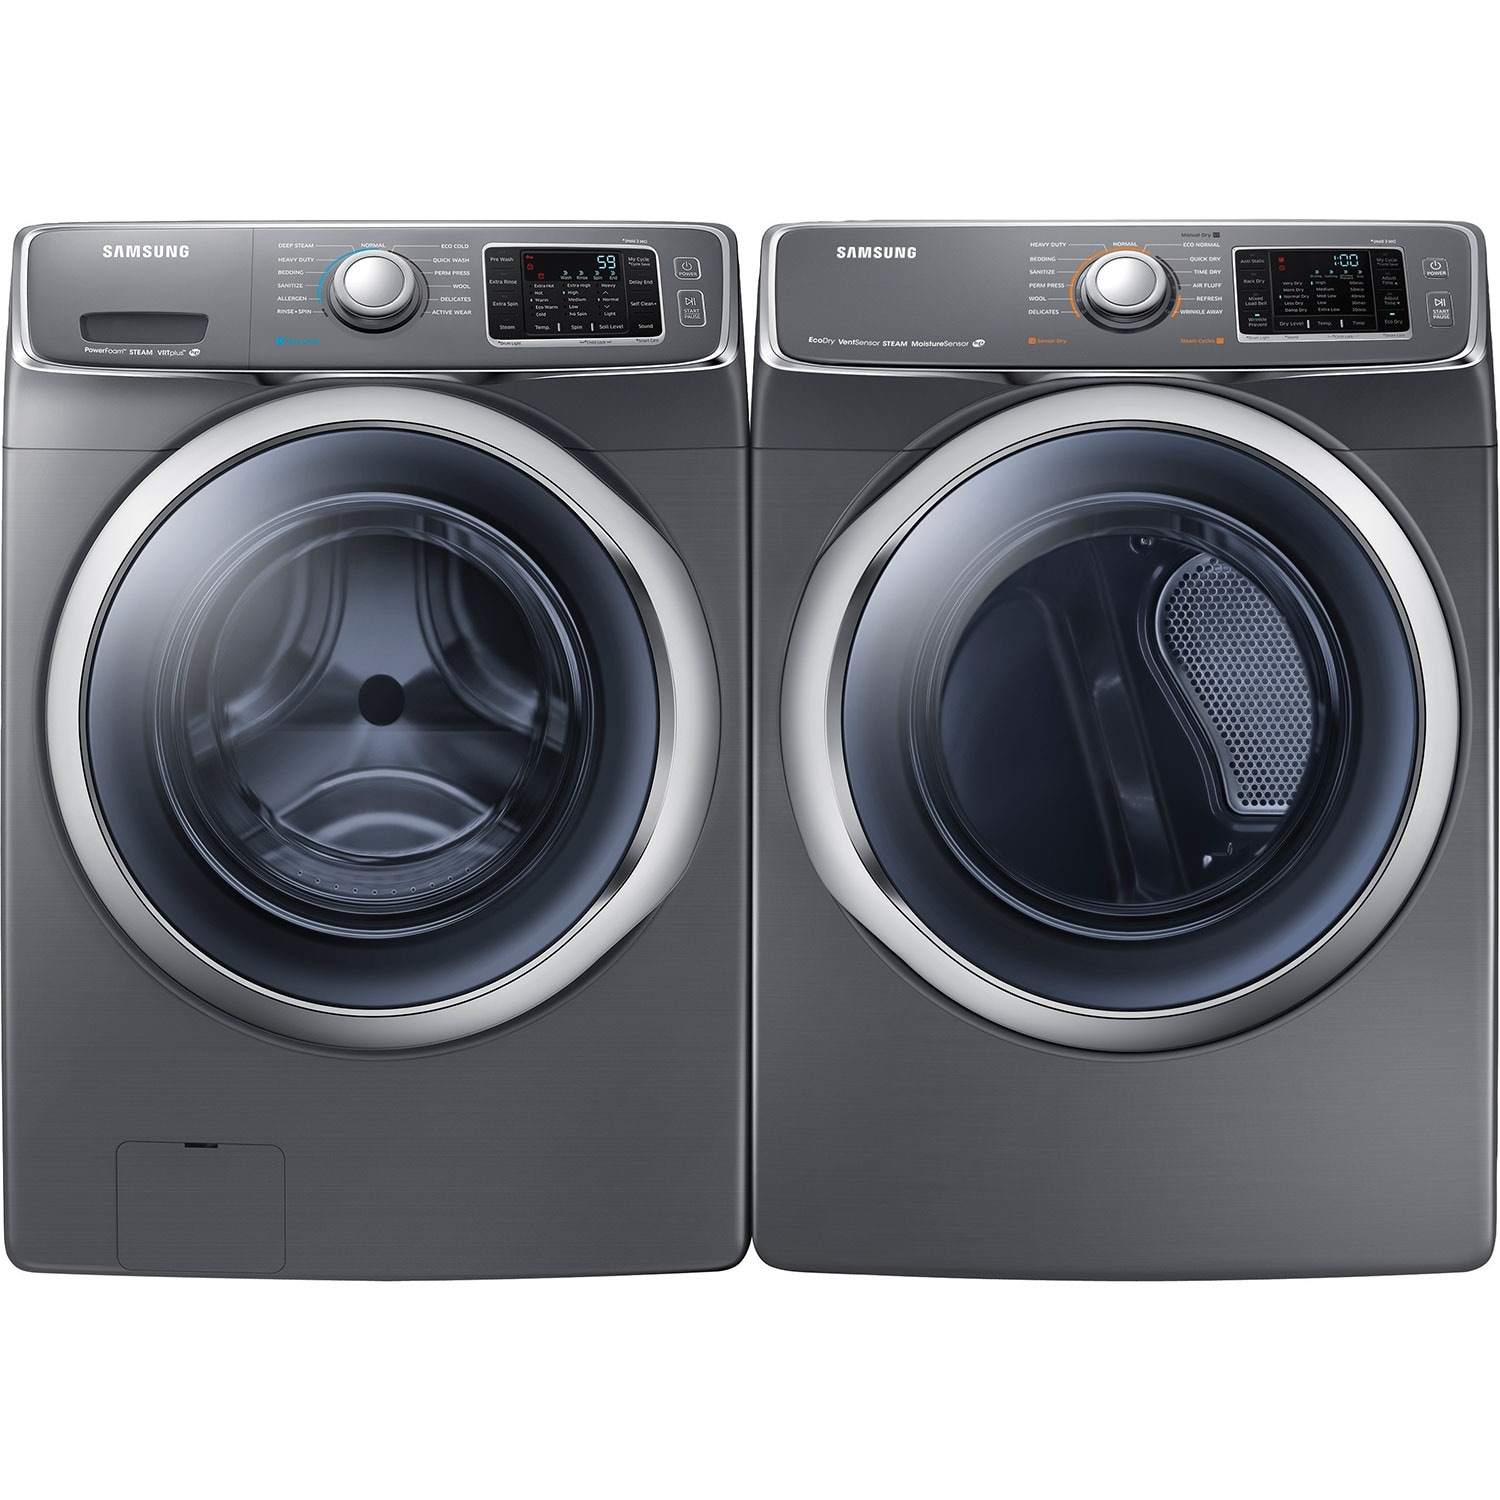 Samsung 5 2 Cu Ft High Efficiency Front Load Washer And